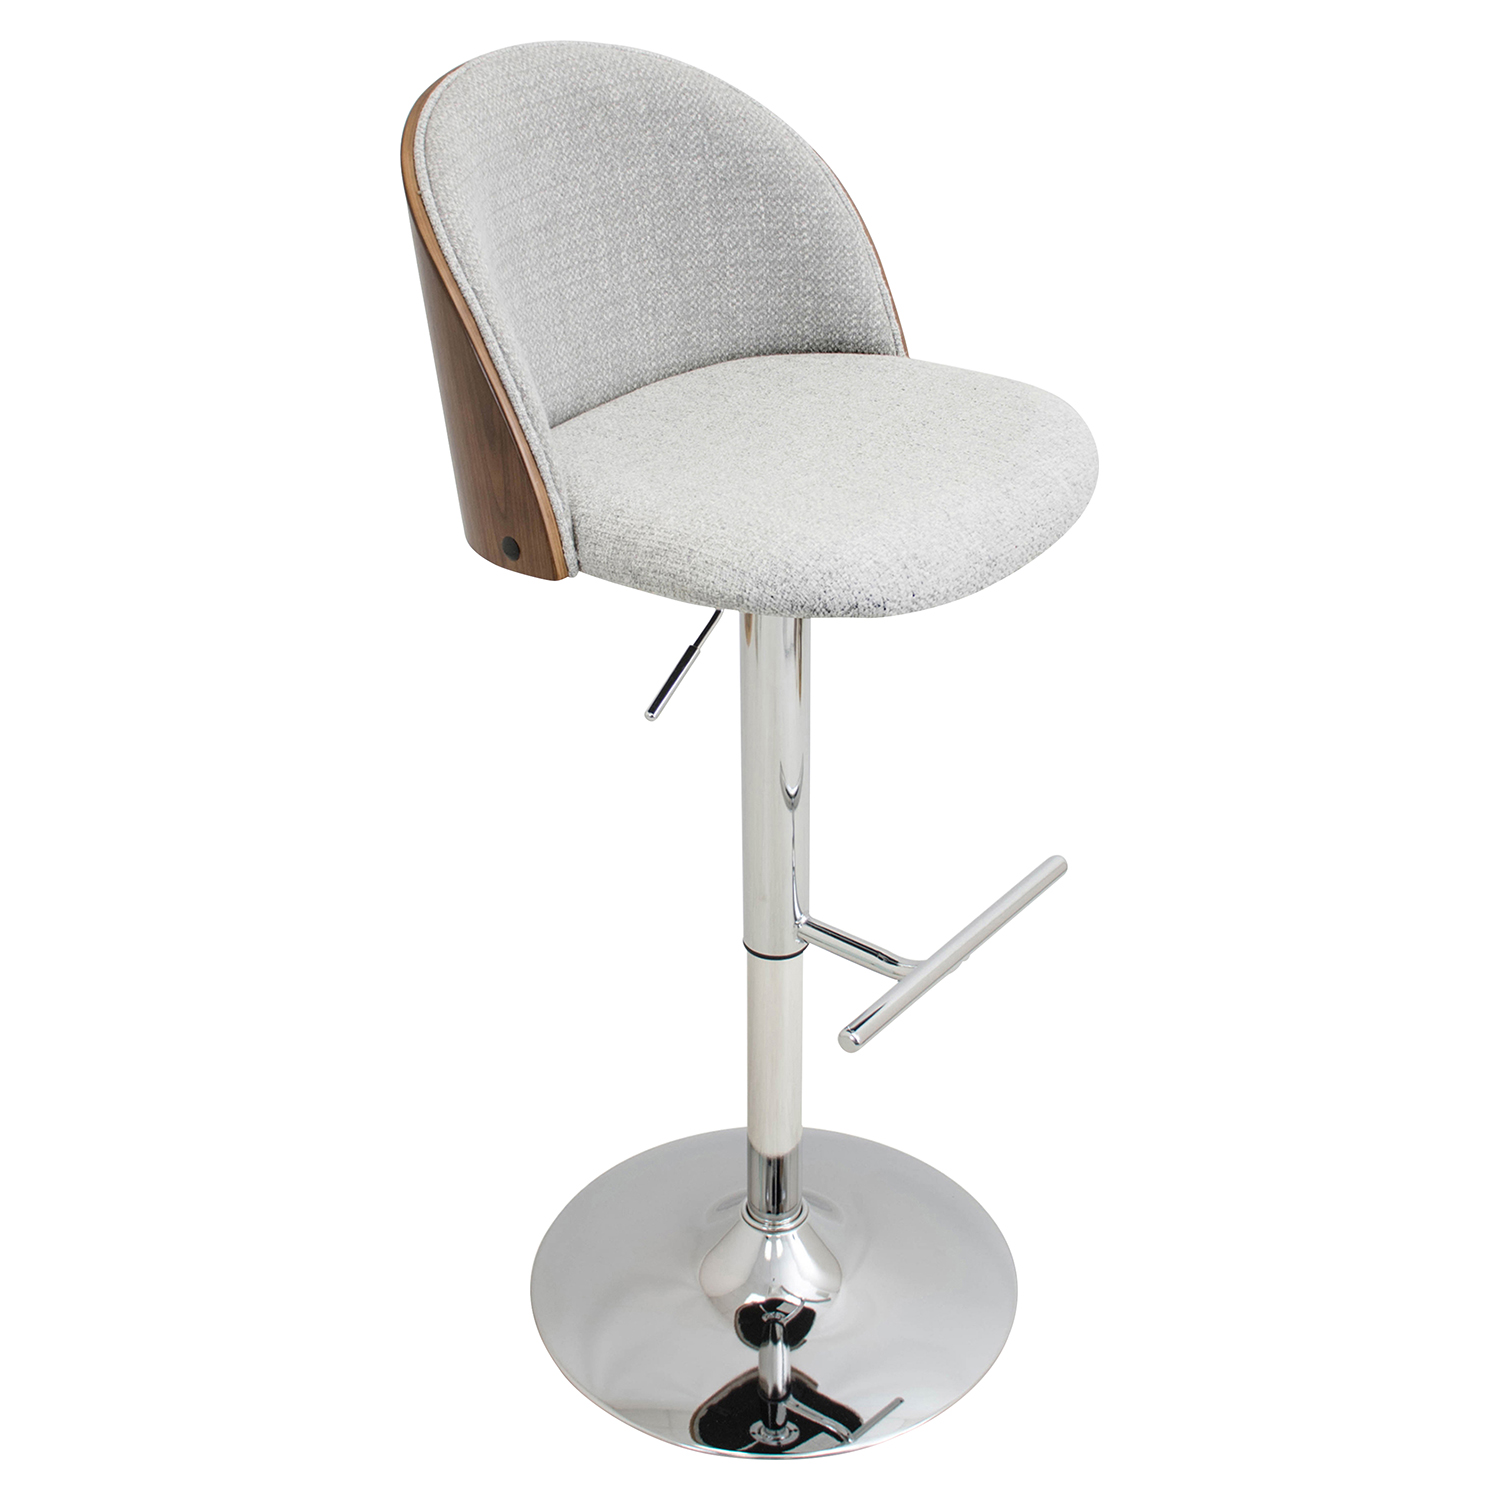 Luna Height Adjustable Barstool - Swivel, White